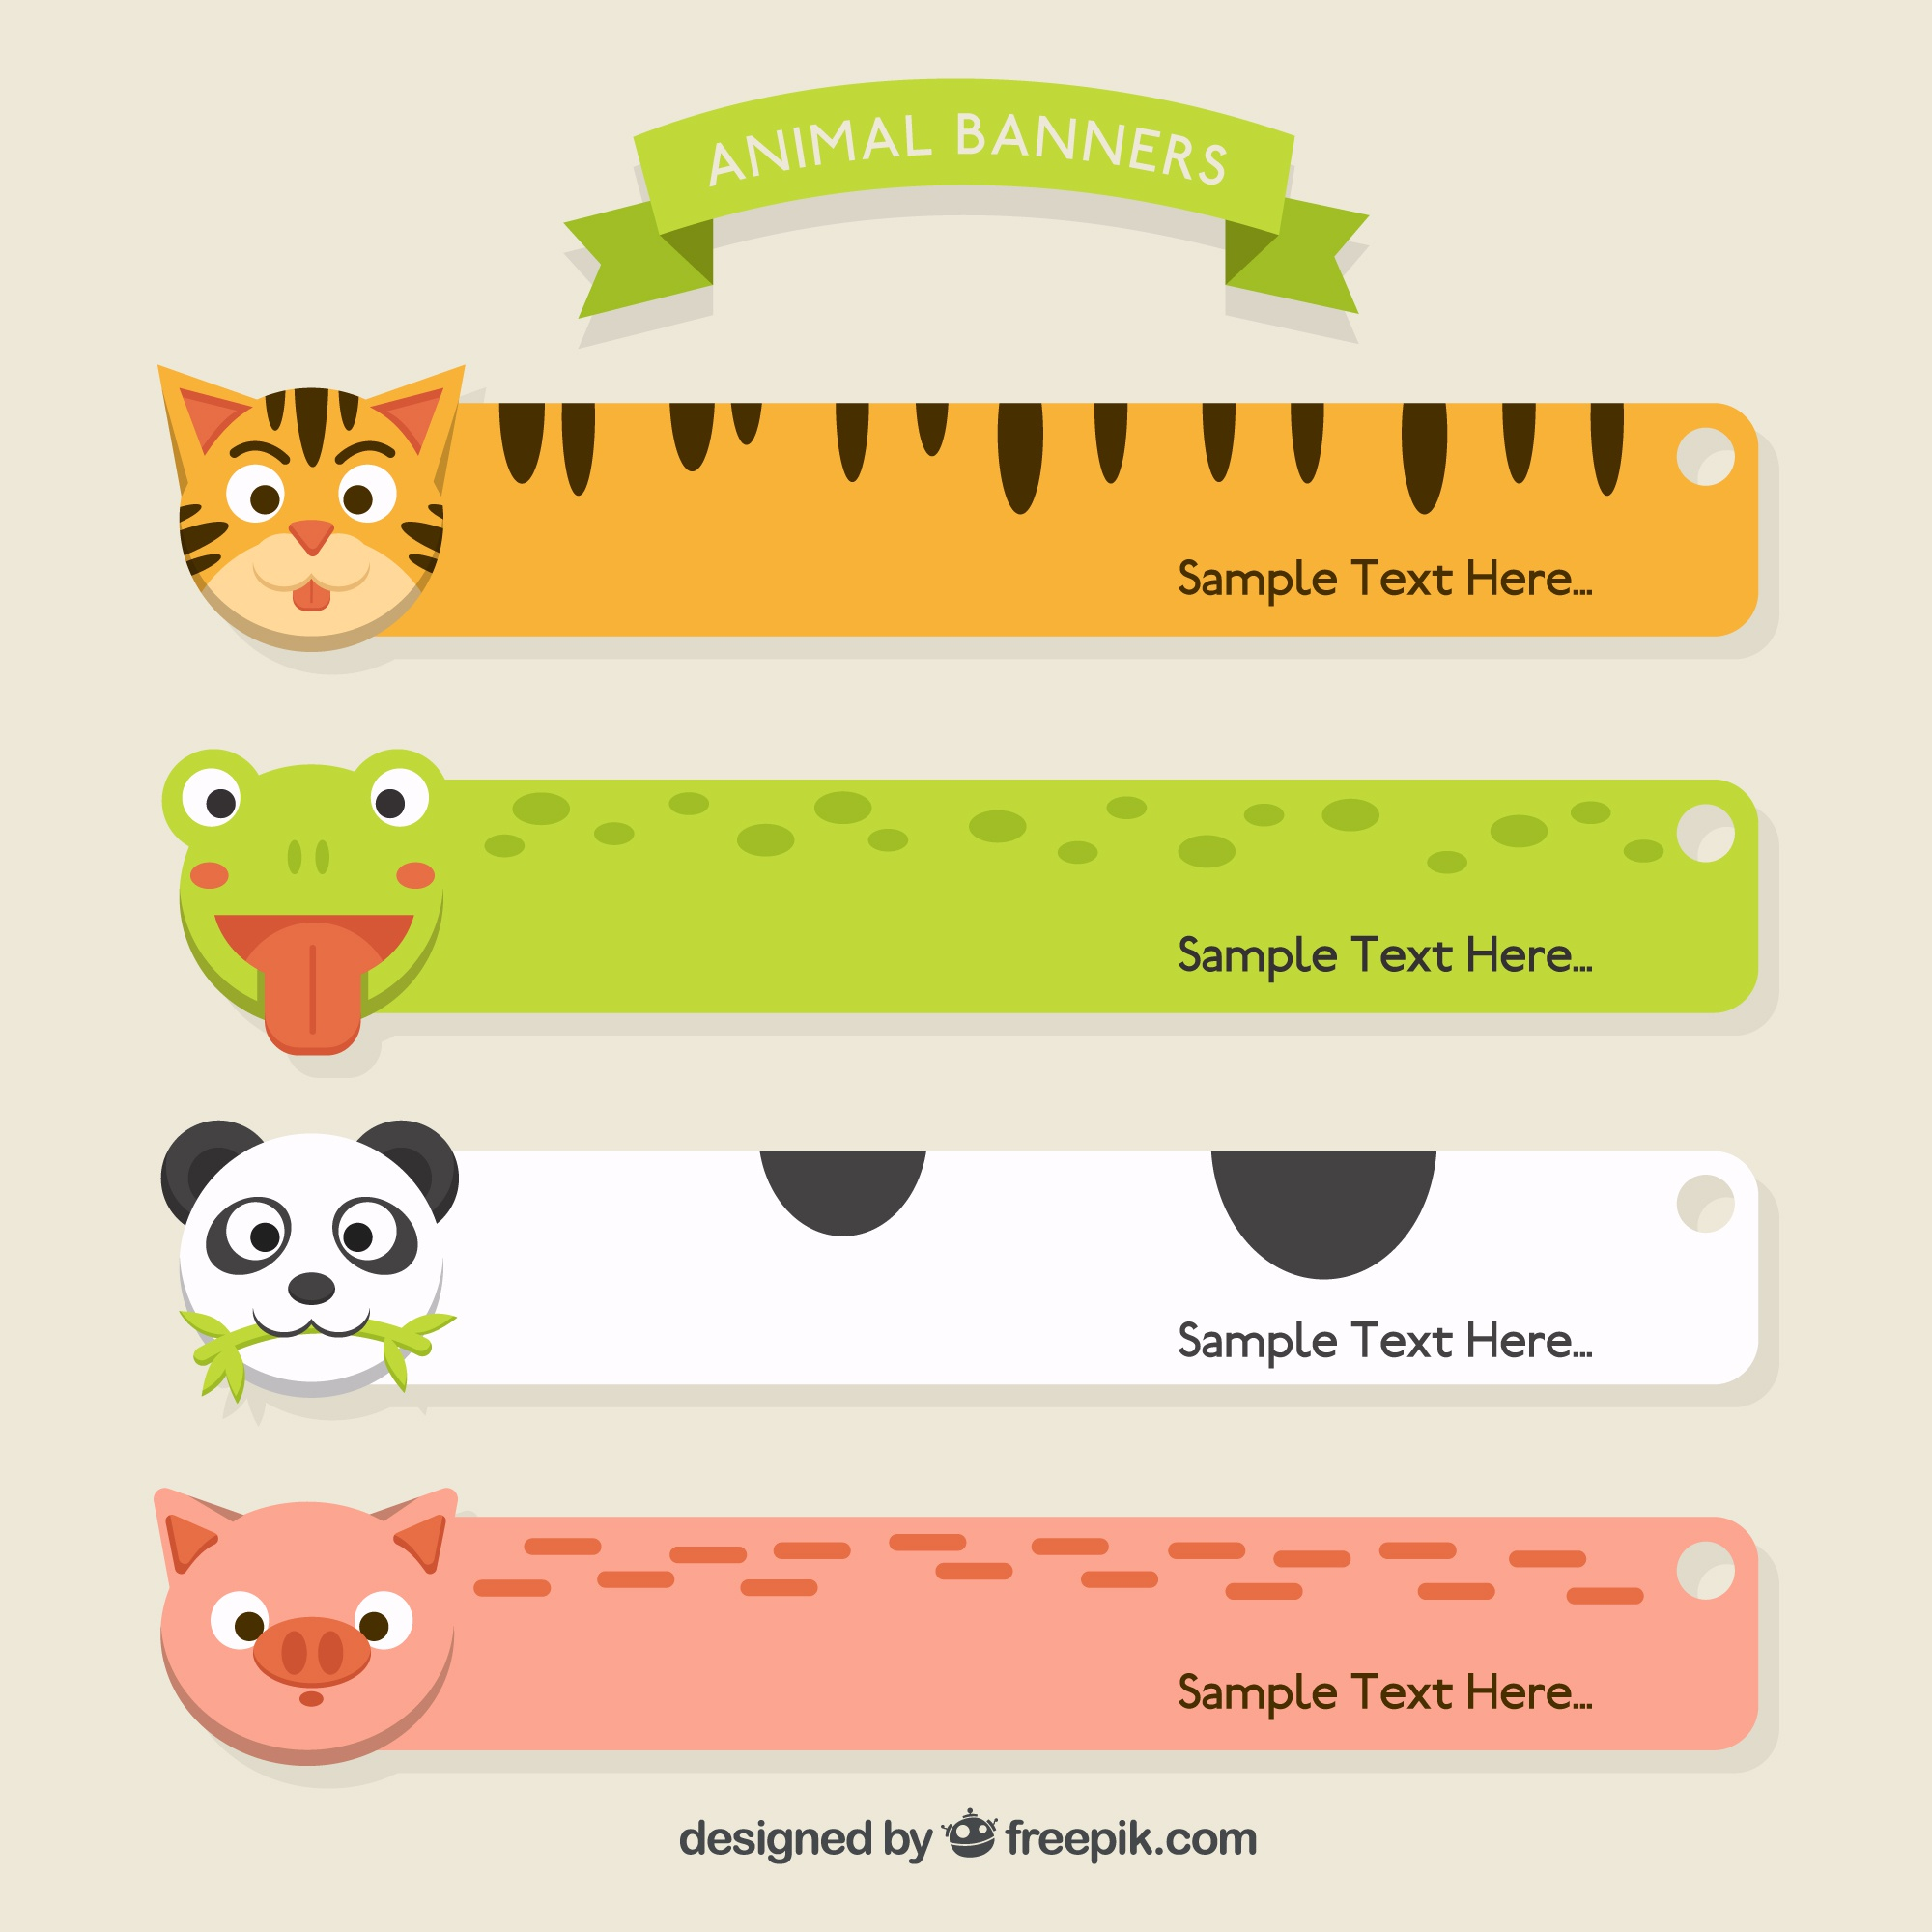 Lovely animal banners